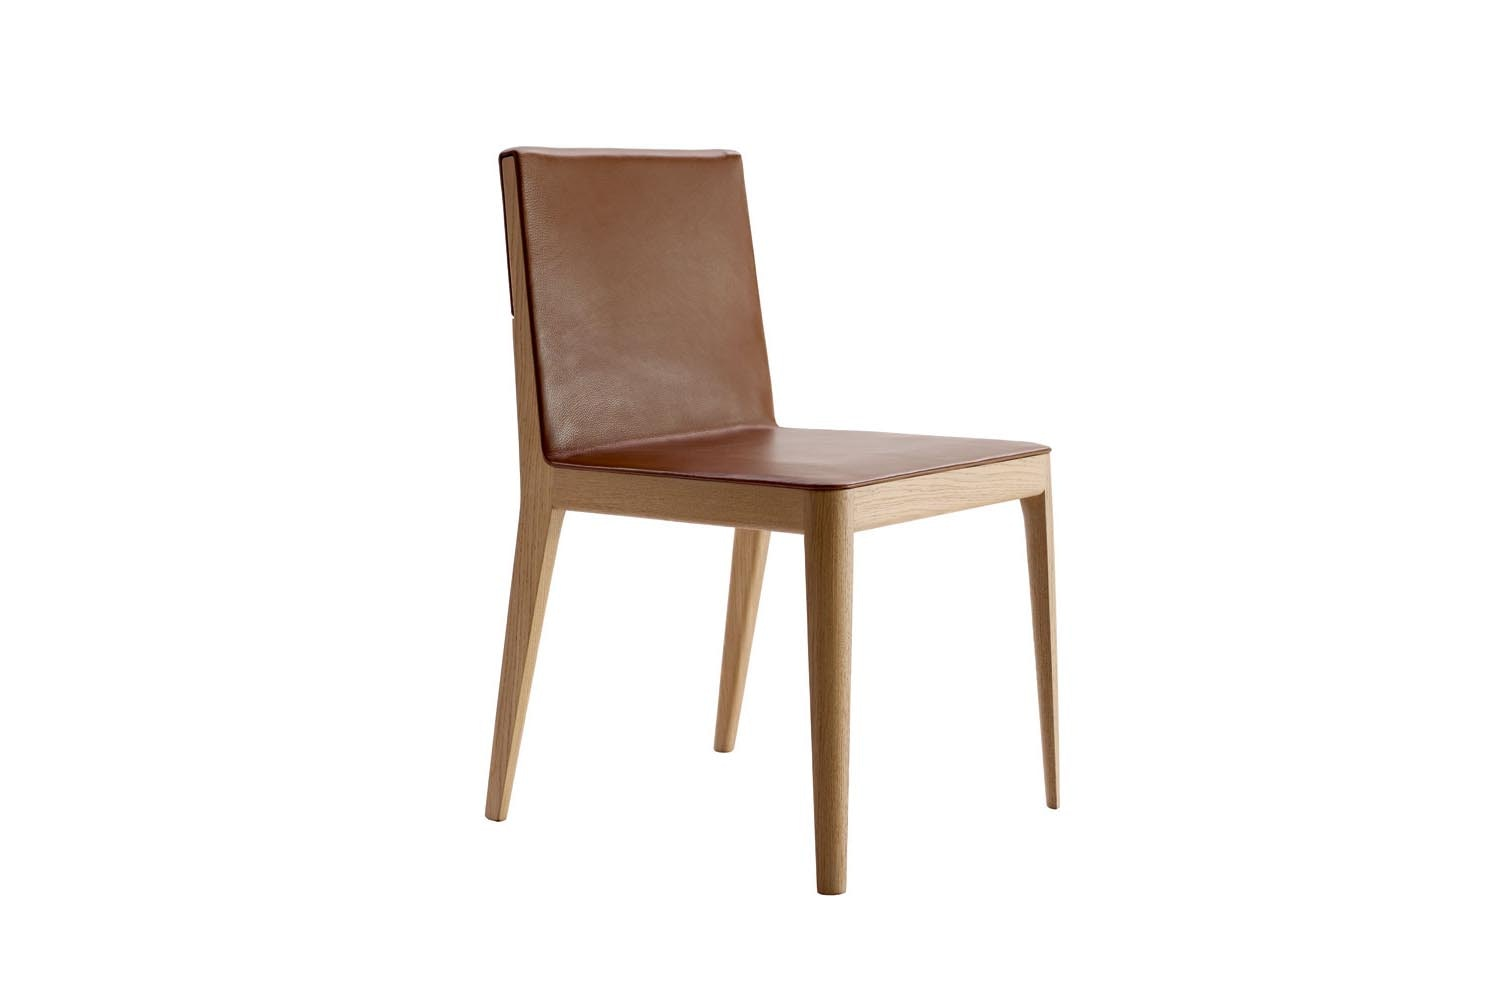 EL Chair by Antonio Citterio for B&B Italia